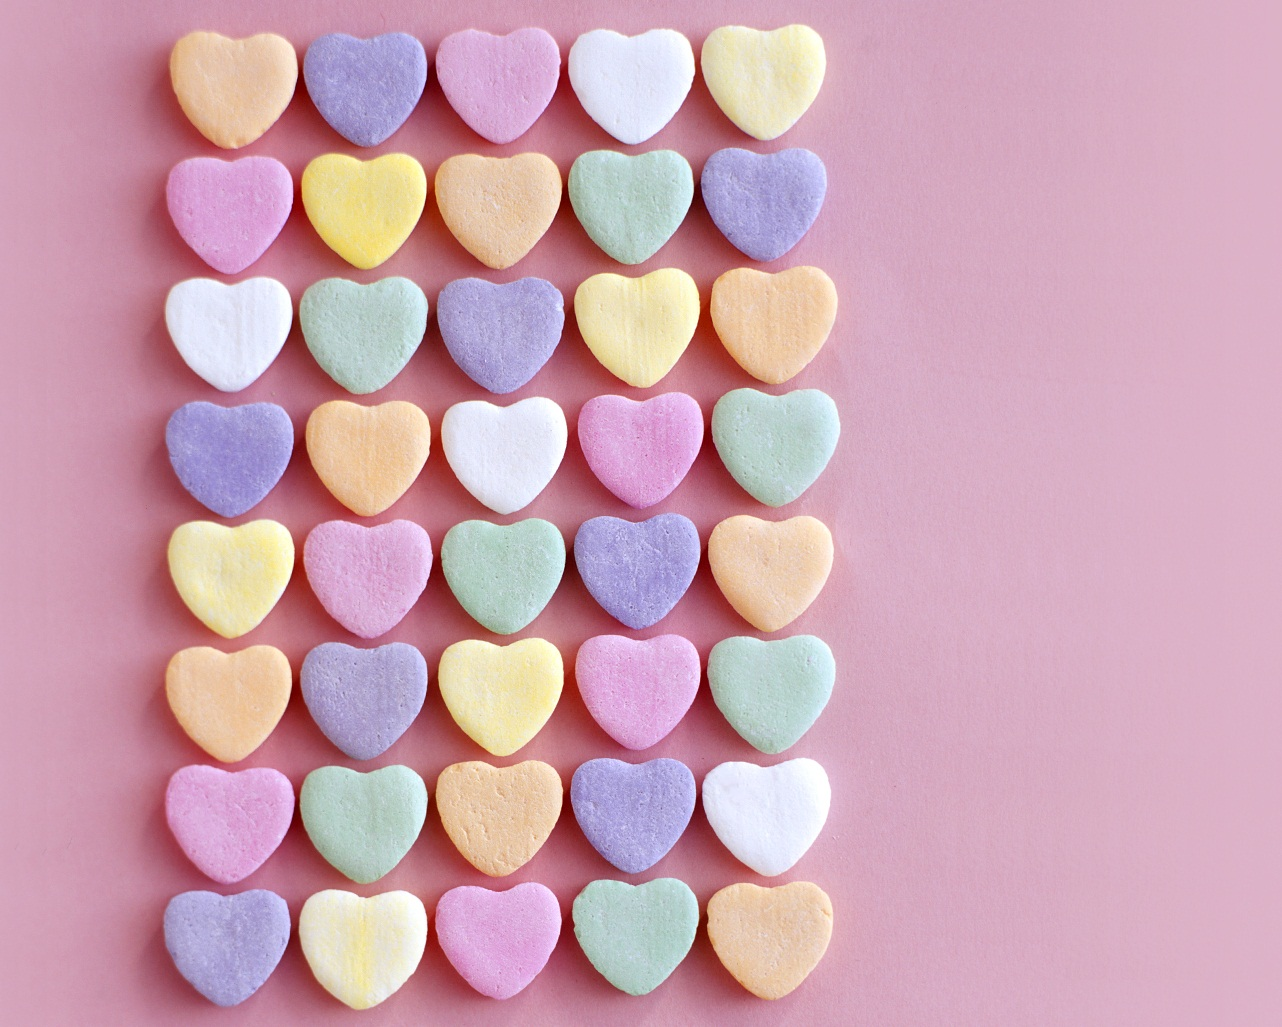 Pictures of candy heart messages